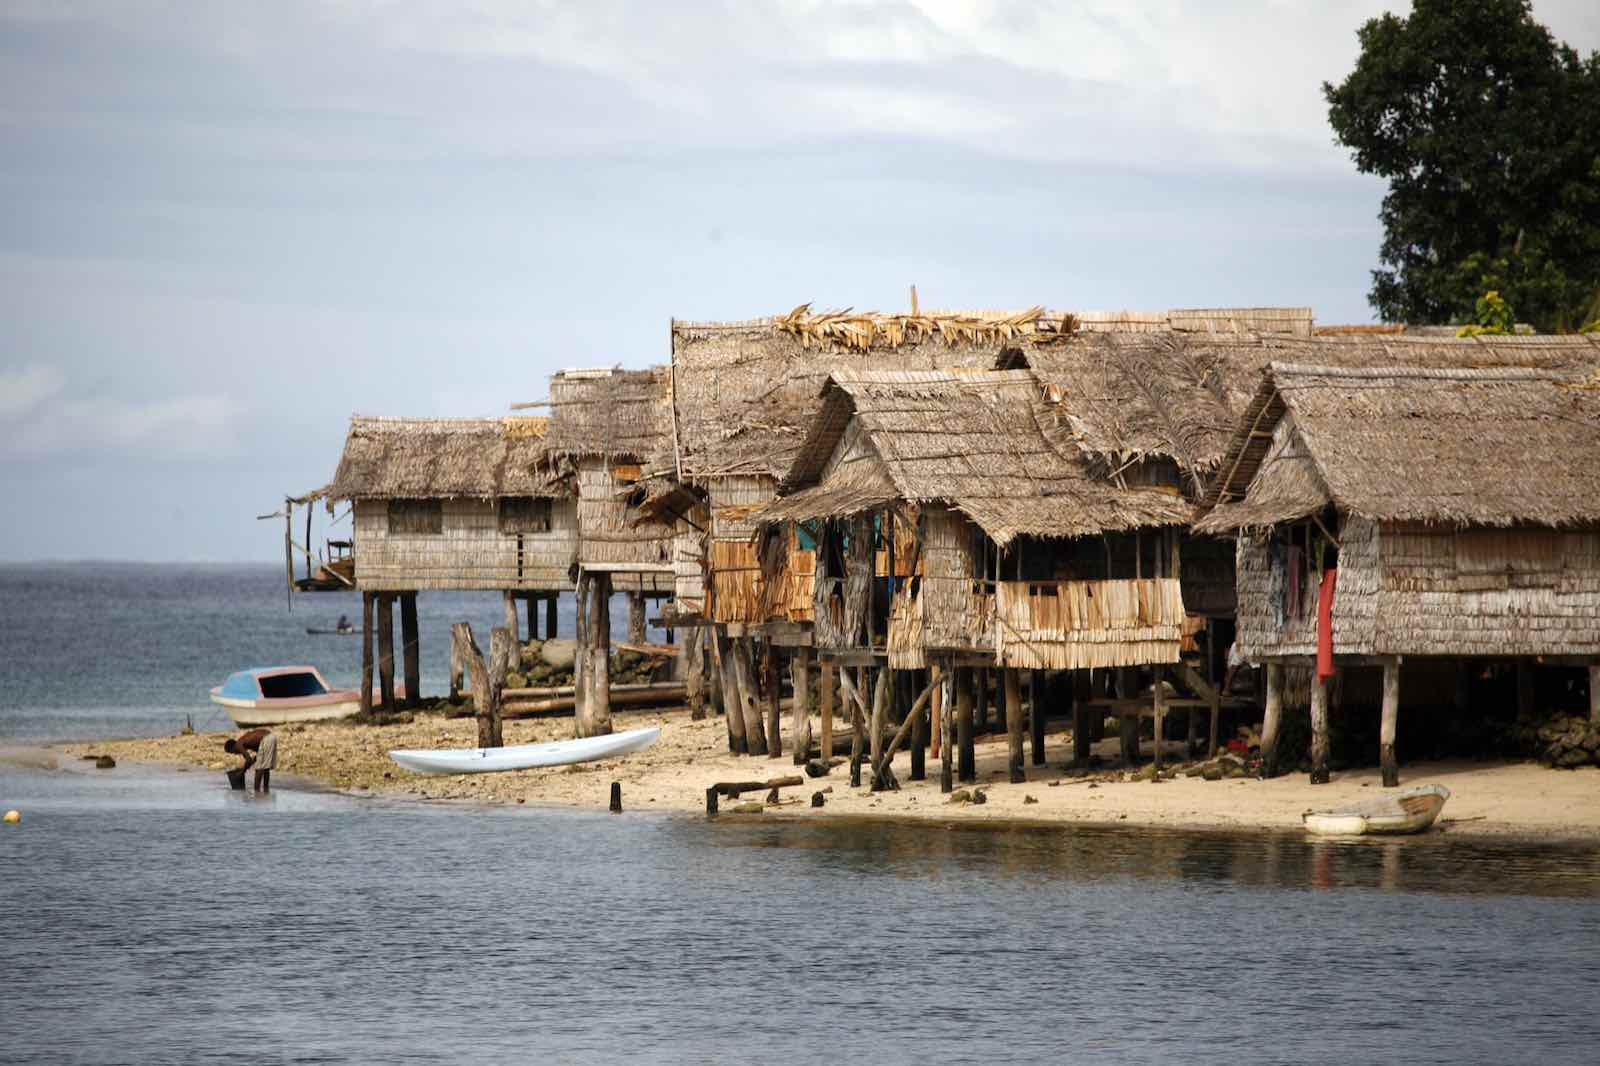 Houses in Auki, Solomon Islands (Photo: Rob Maccoll/DFAT/Flickr)